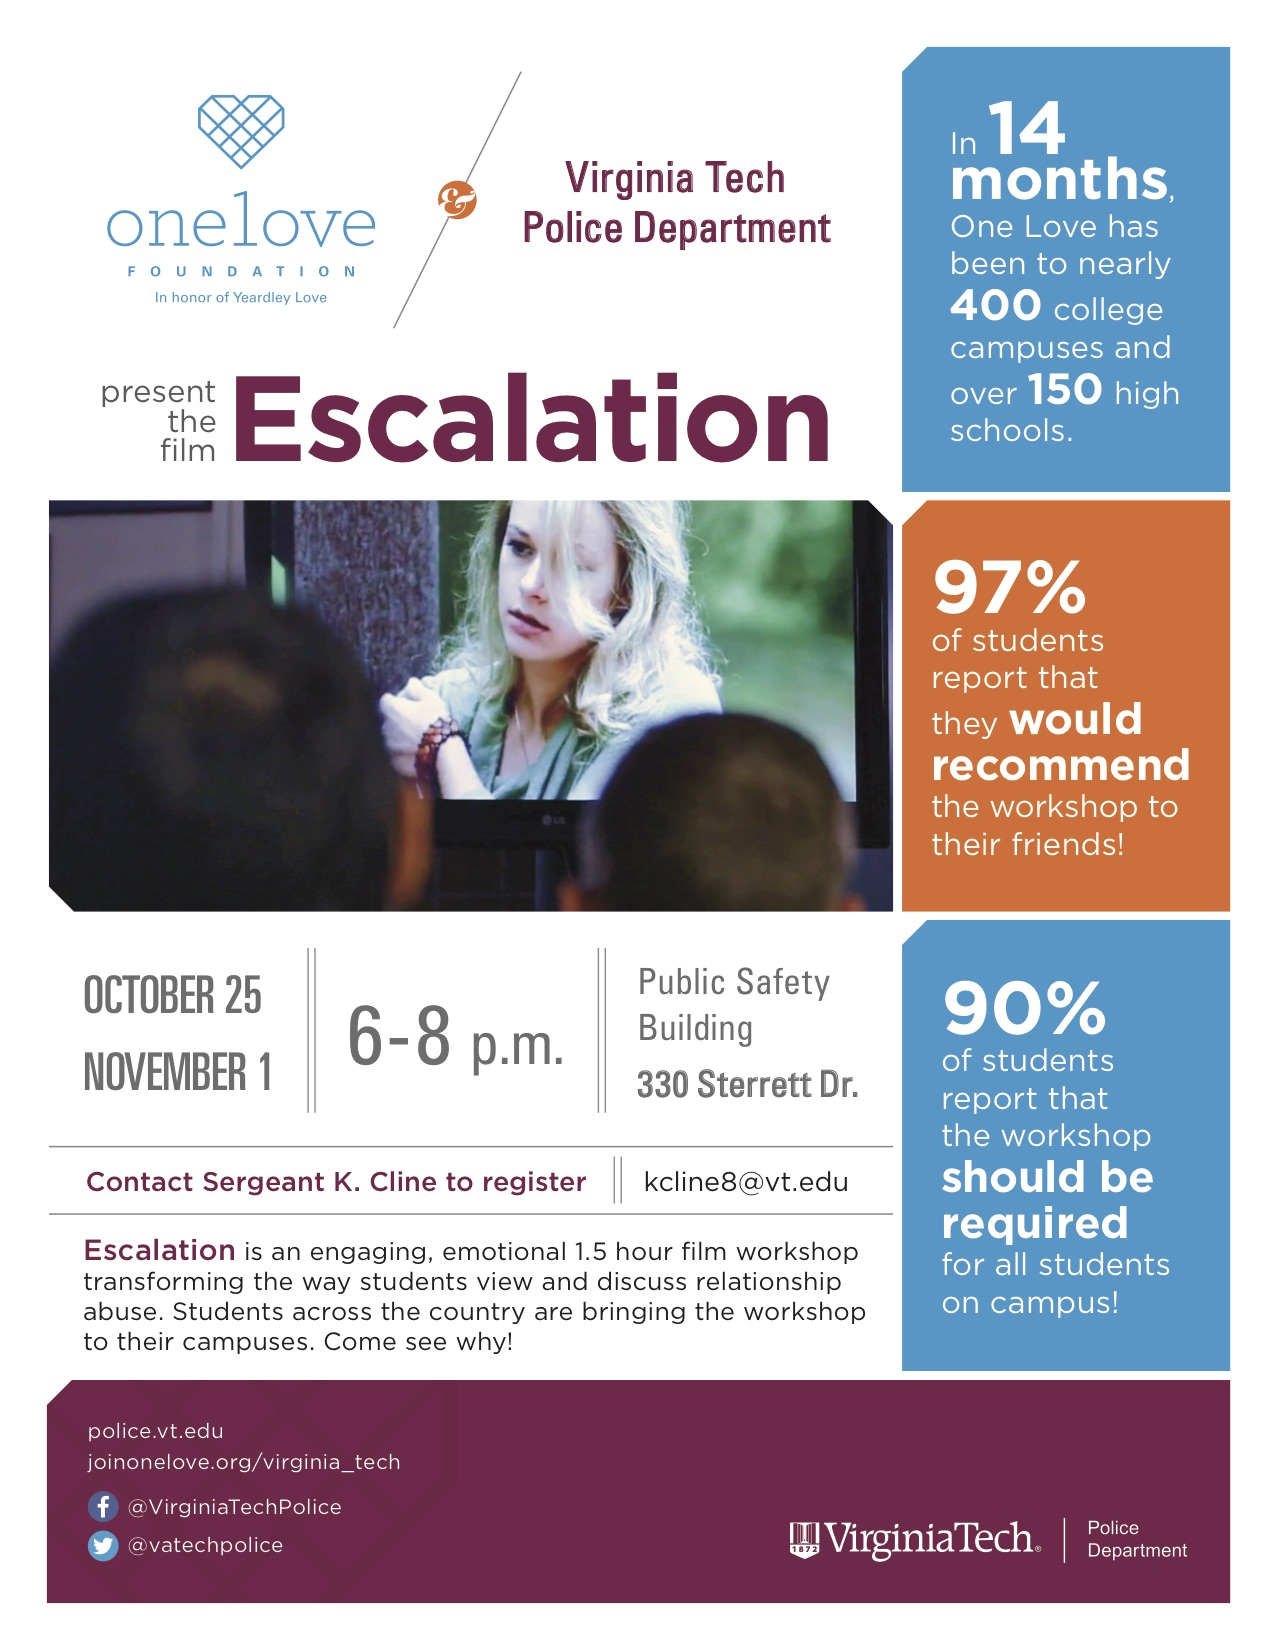 One Love Foundation presents the film Escalation